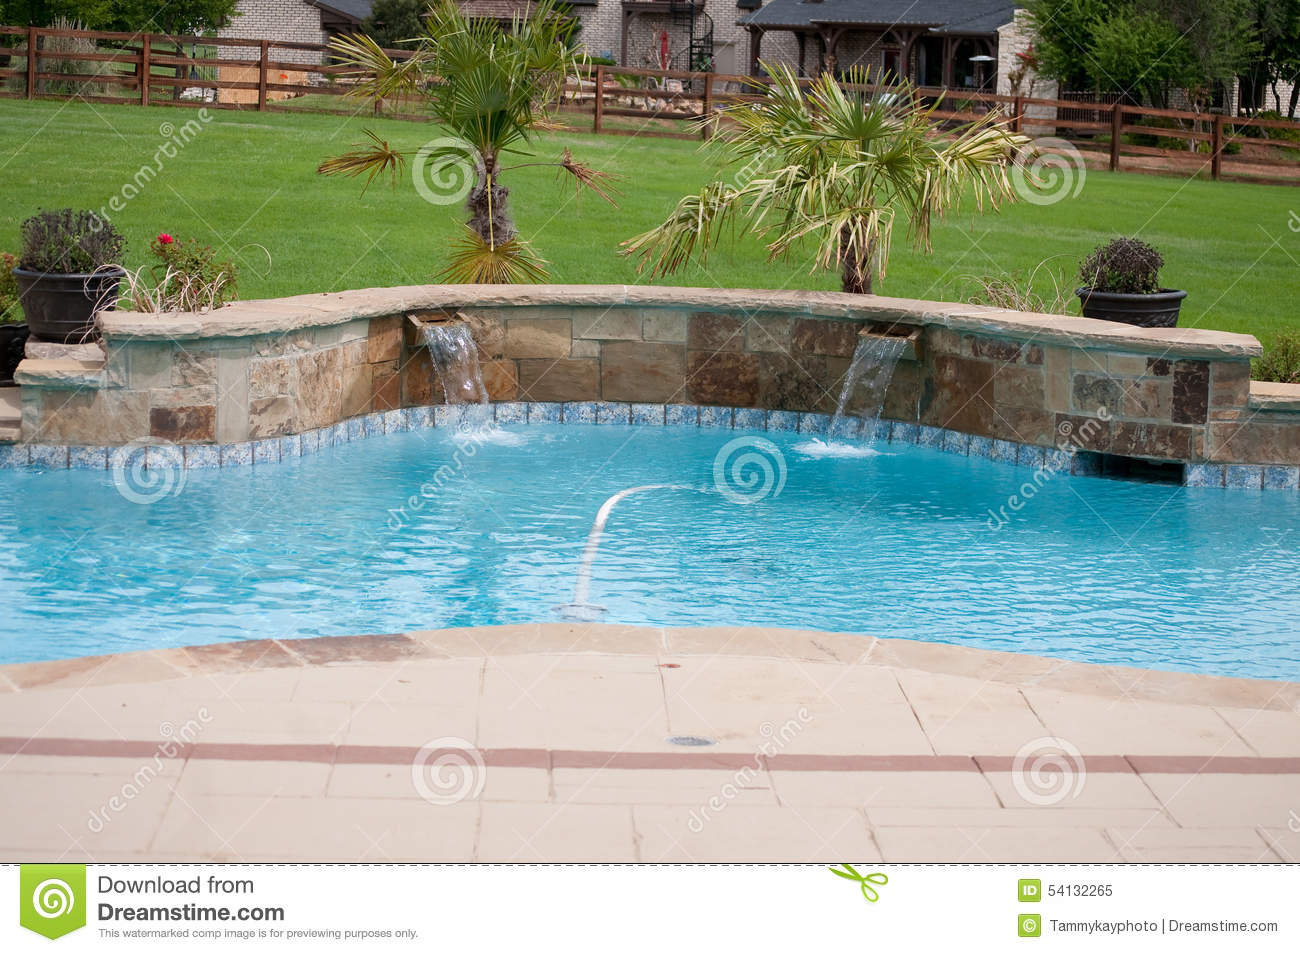 Residential beautiful swimming pool stock image image for Pool time pools